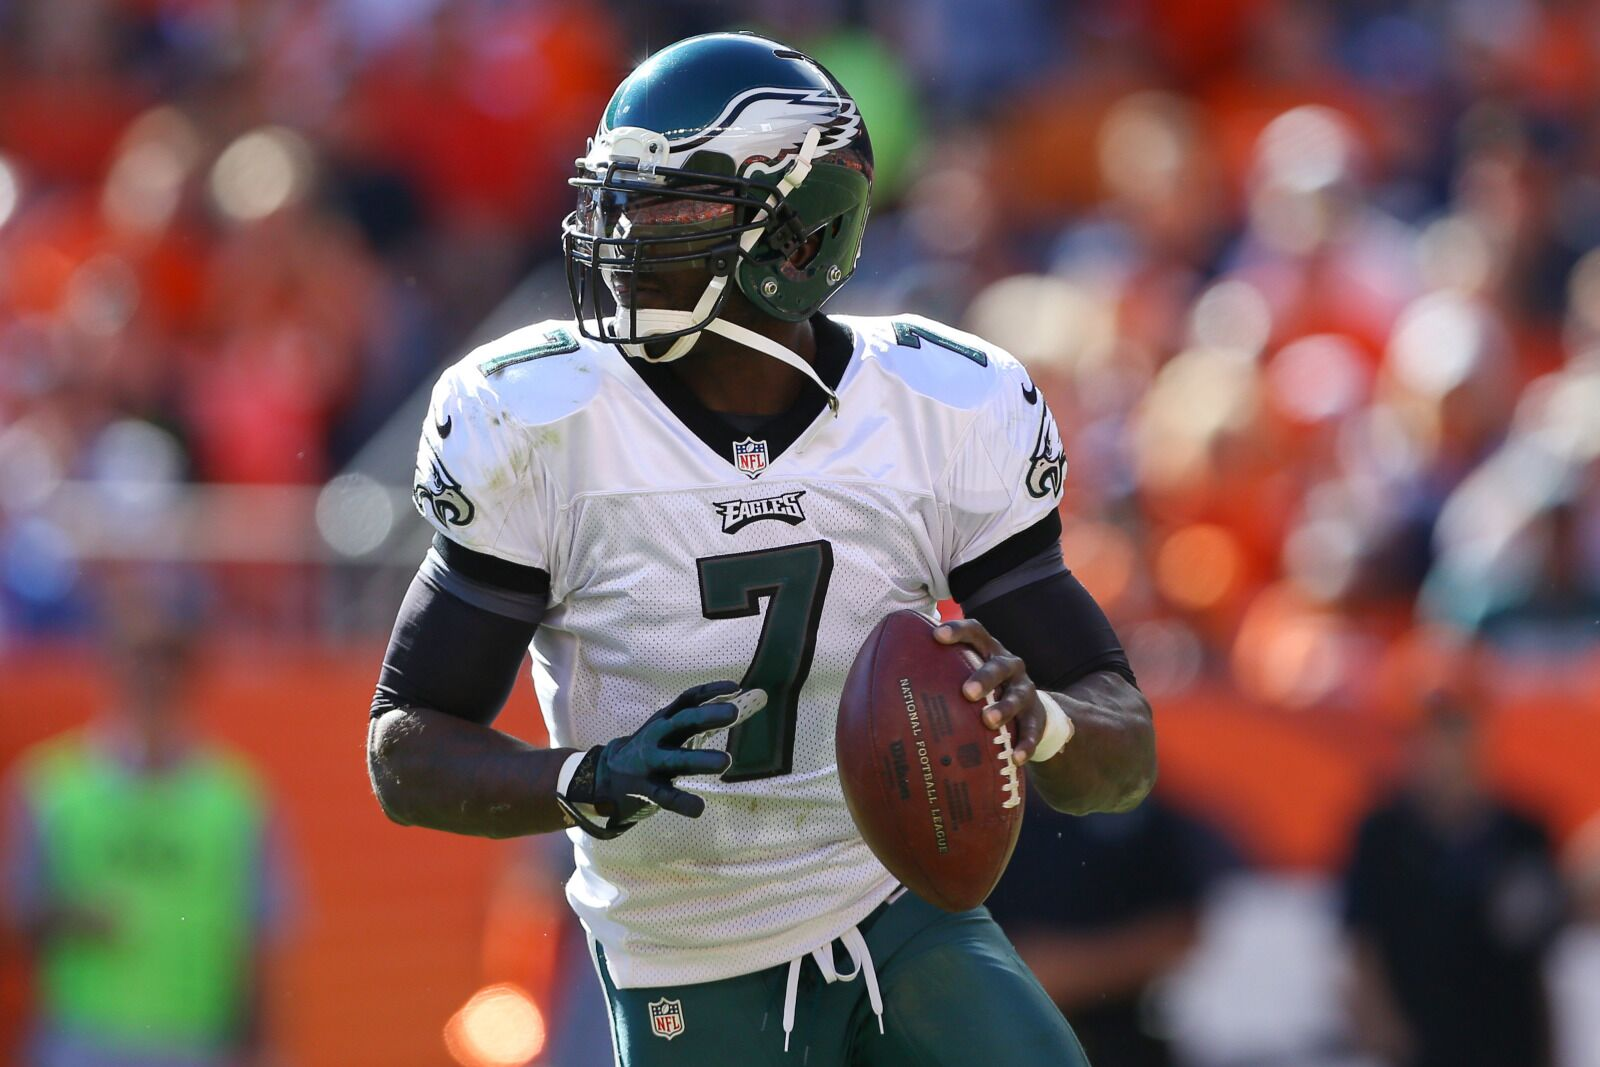 Flashback Friday: Top 5 plays of Michael Vick's career